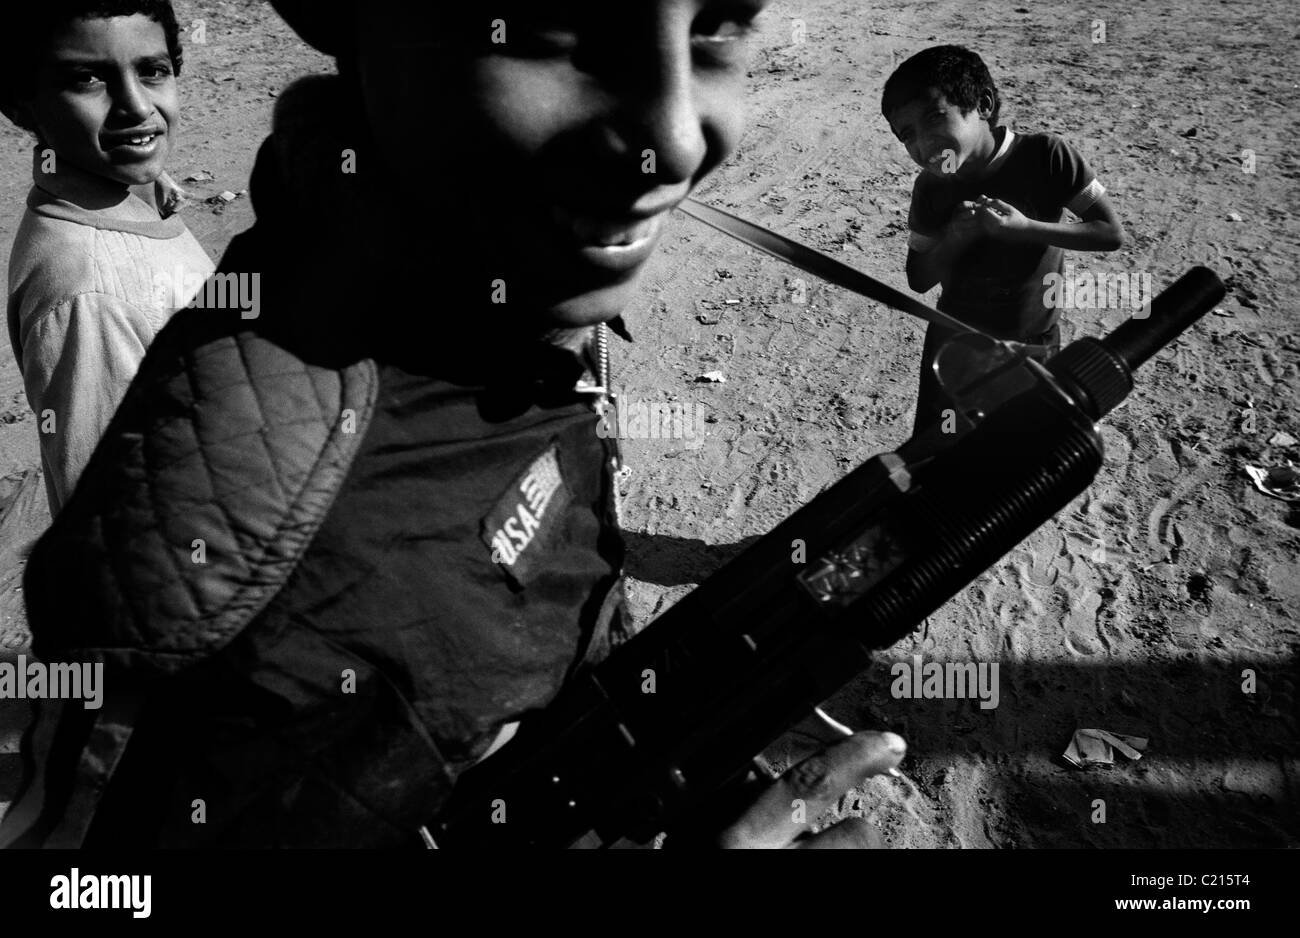 Jabalya Refugee Camp, Gaza 1988. Children with toy guns during the Intifada against the Israeli occupation. - Stock Image